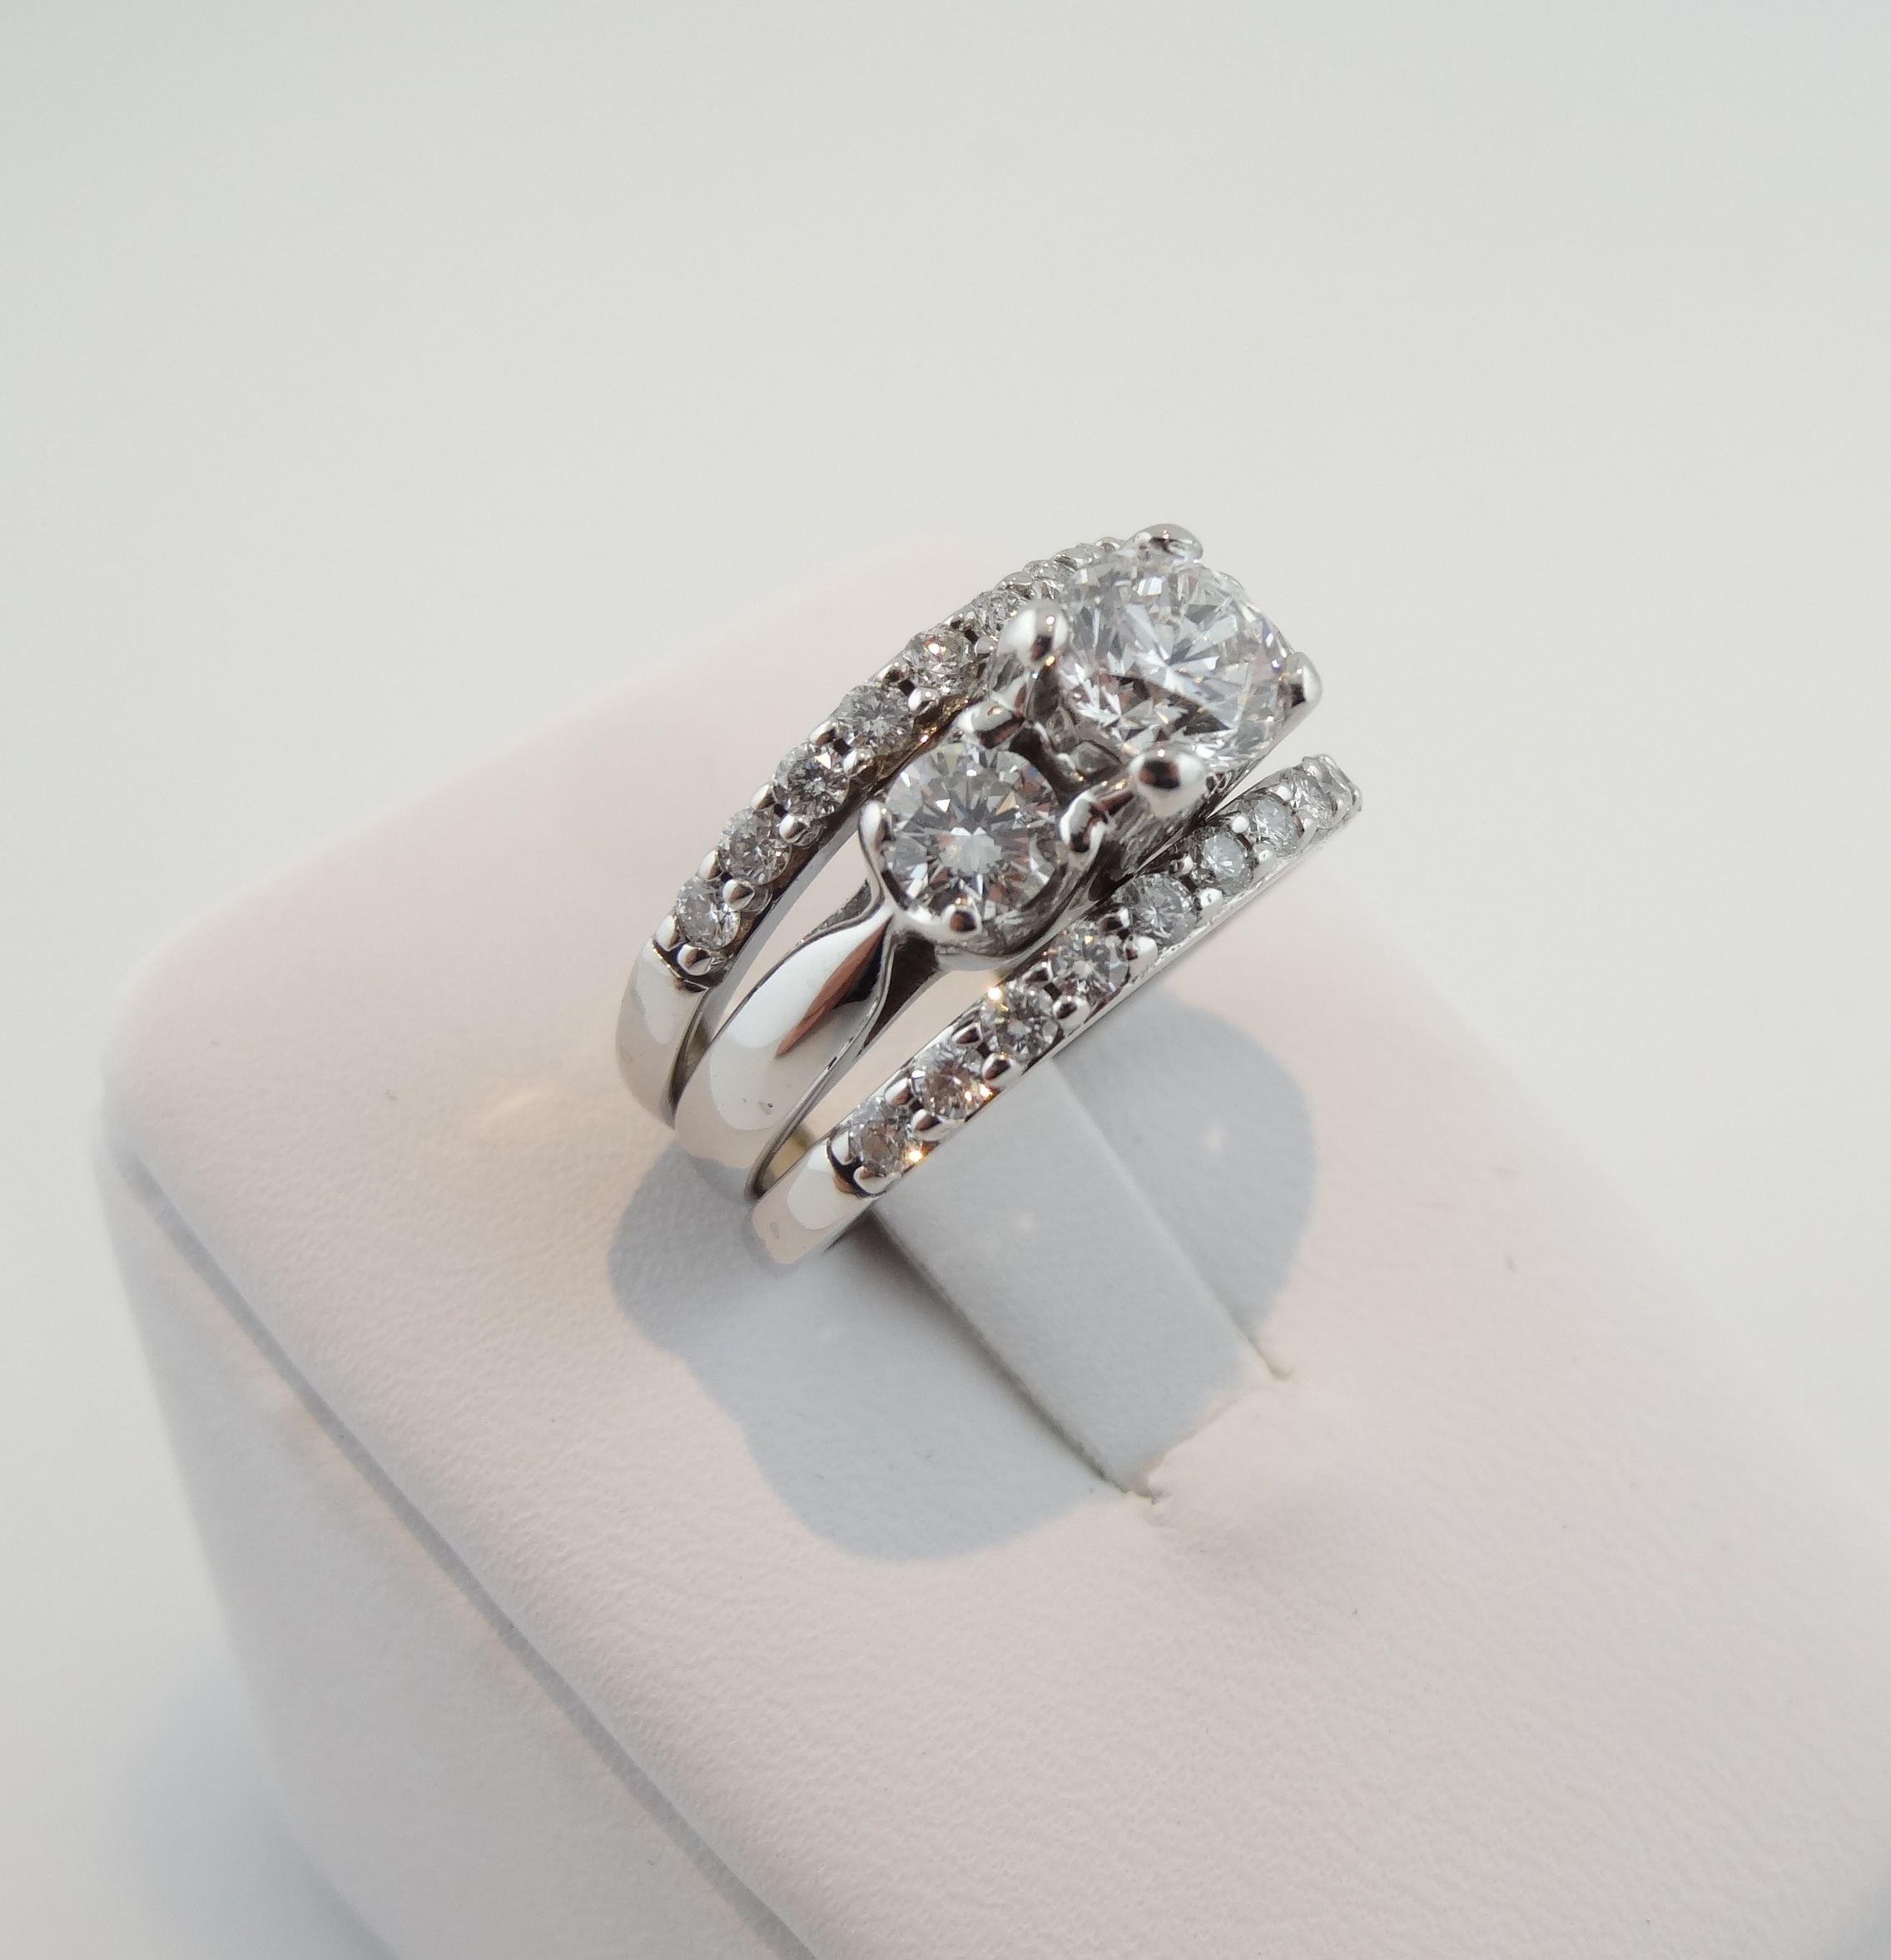 stone ring silver wedding jewellery your make own gold shop rings and